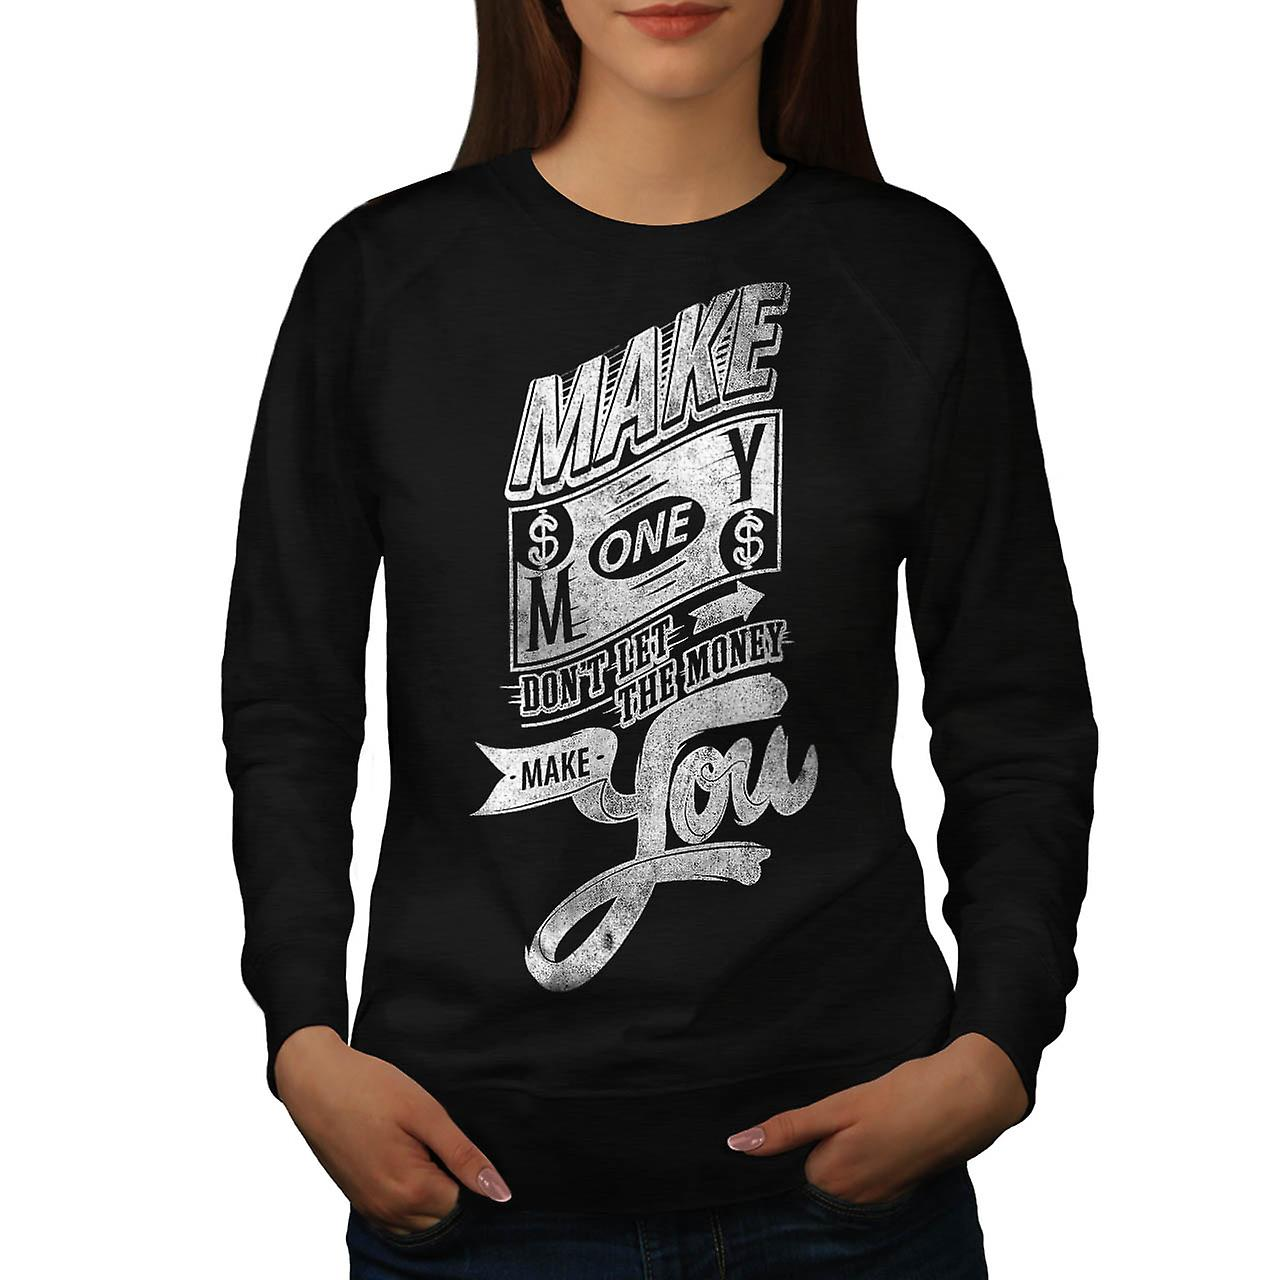 Make Money Inspire Dollars Pound Women Black Sweatshirt | Wellcoda